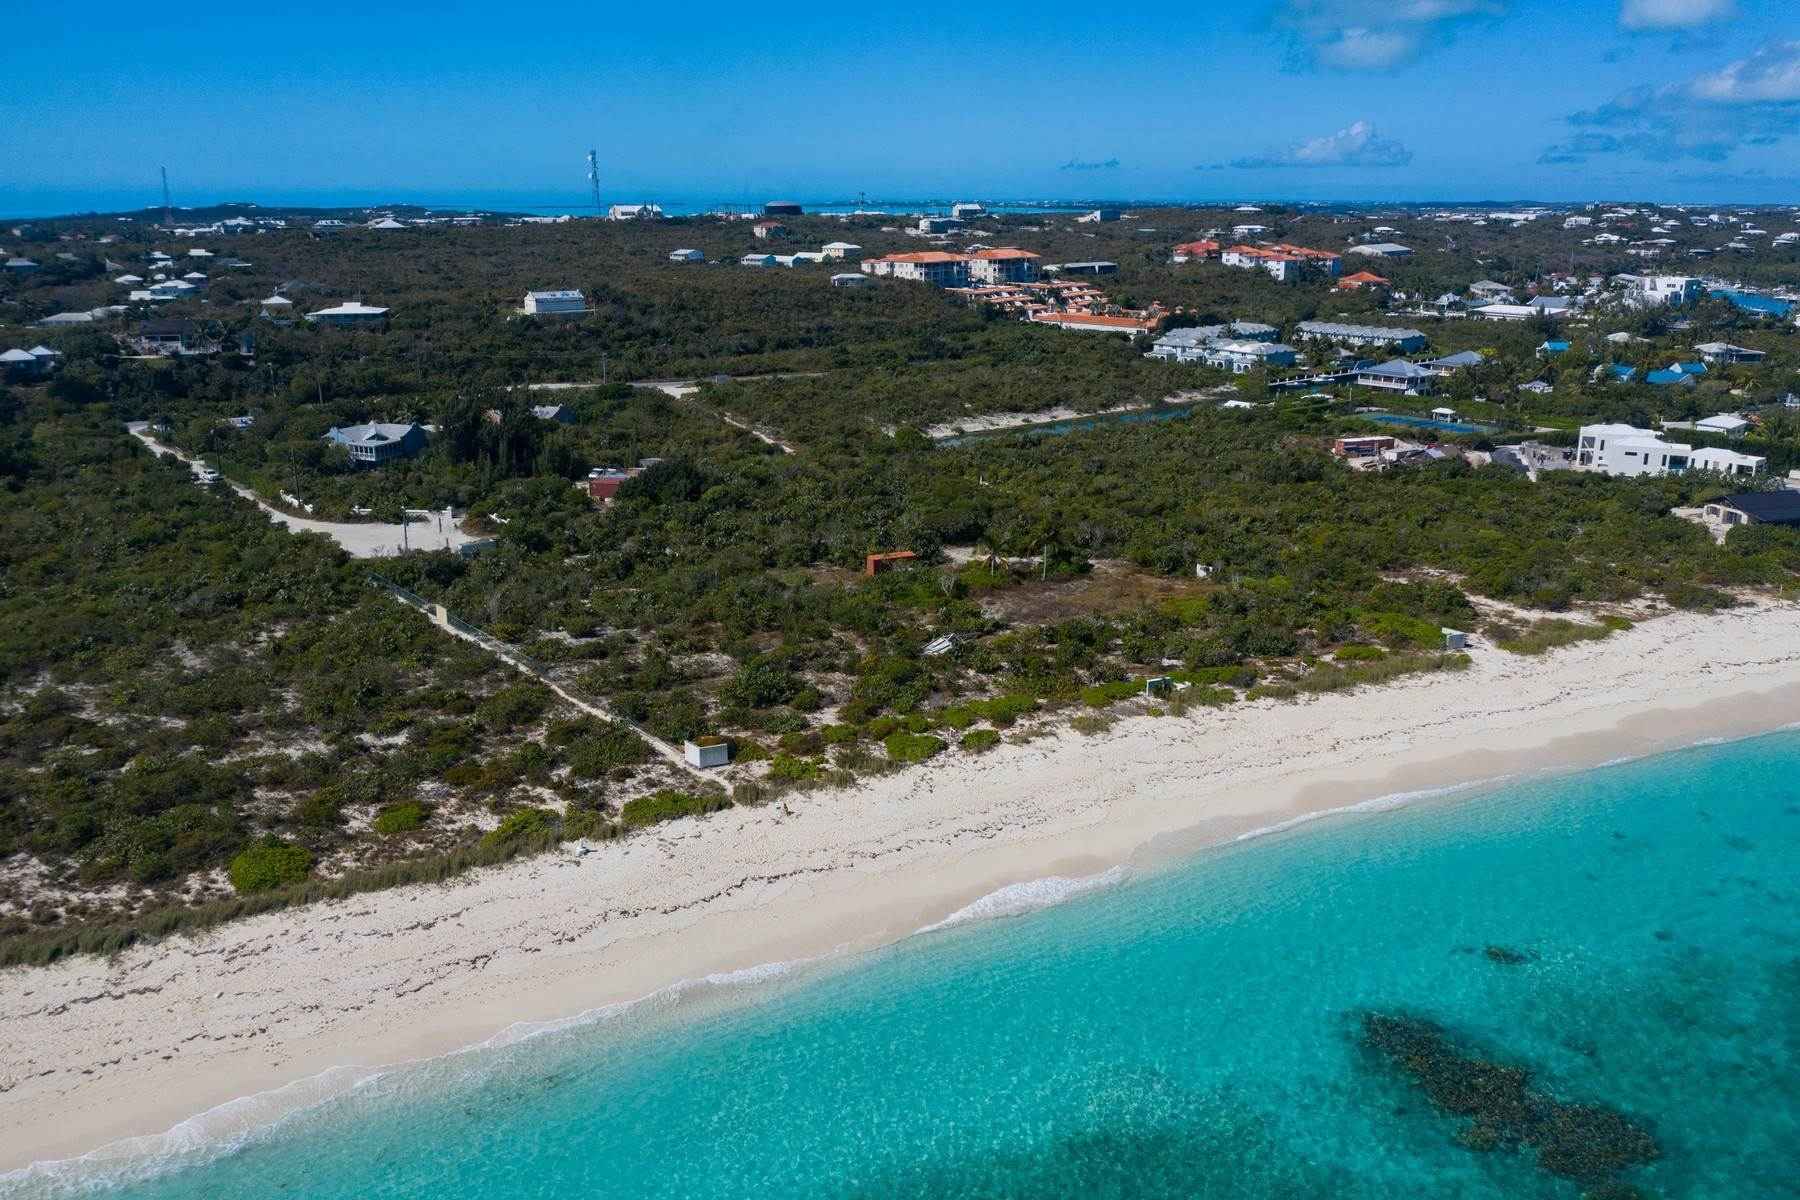 Terreno por un Venta en Donkey Lane Estate land Richmond Hill, Providenciales Islas Turcas y Caicos